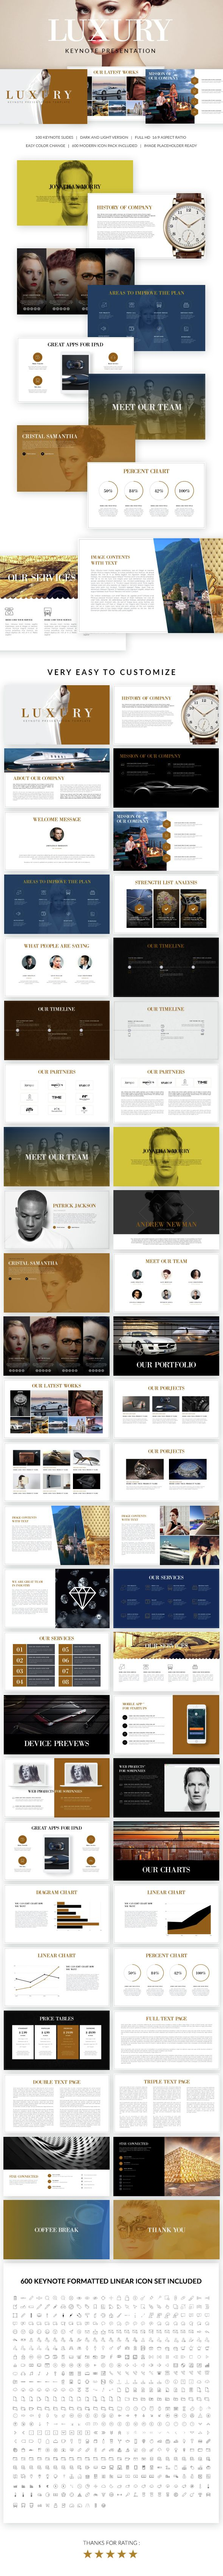 Luxury Keynote Presentation Template. Download here: http://graphicriver.net/item/luxury-keynote-presentation-template/15218825?ref=ksioks